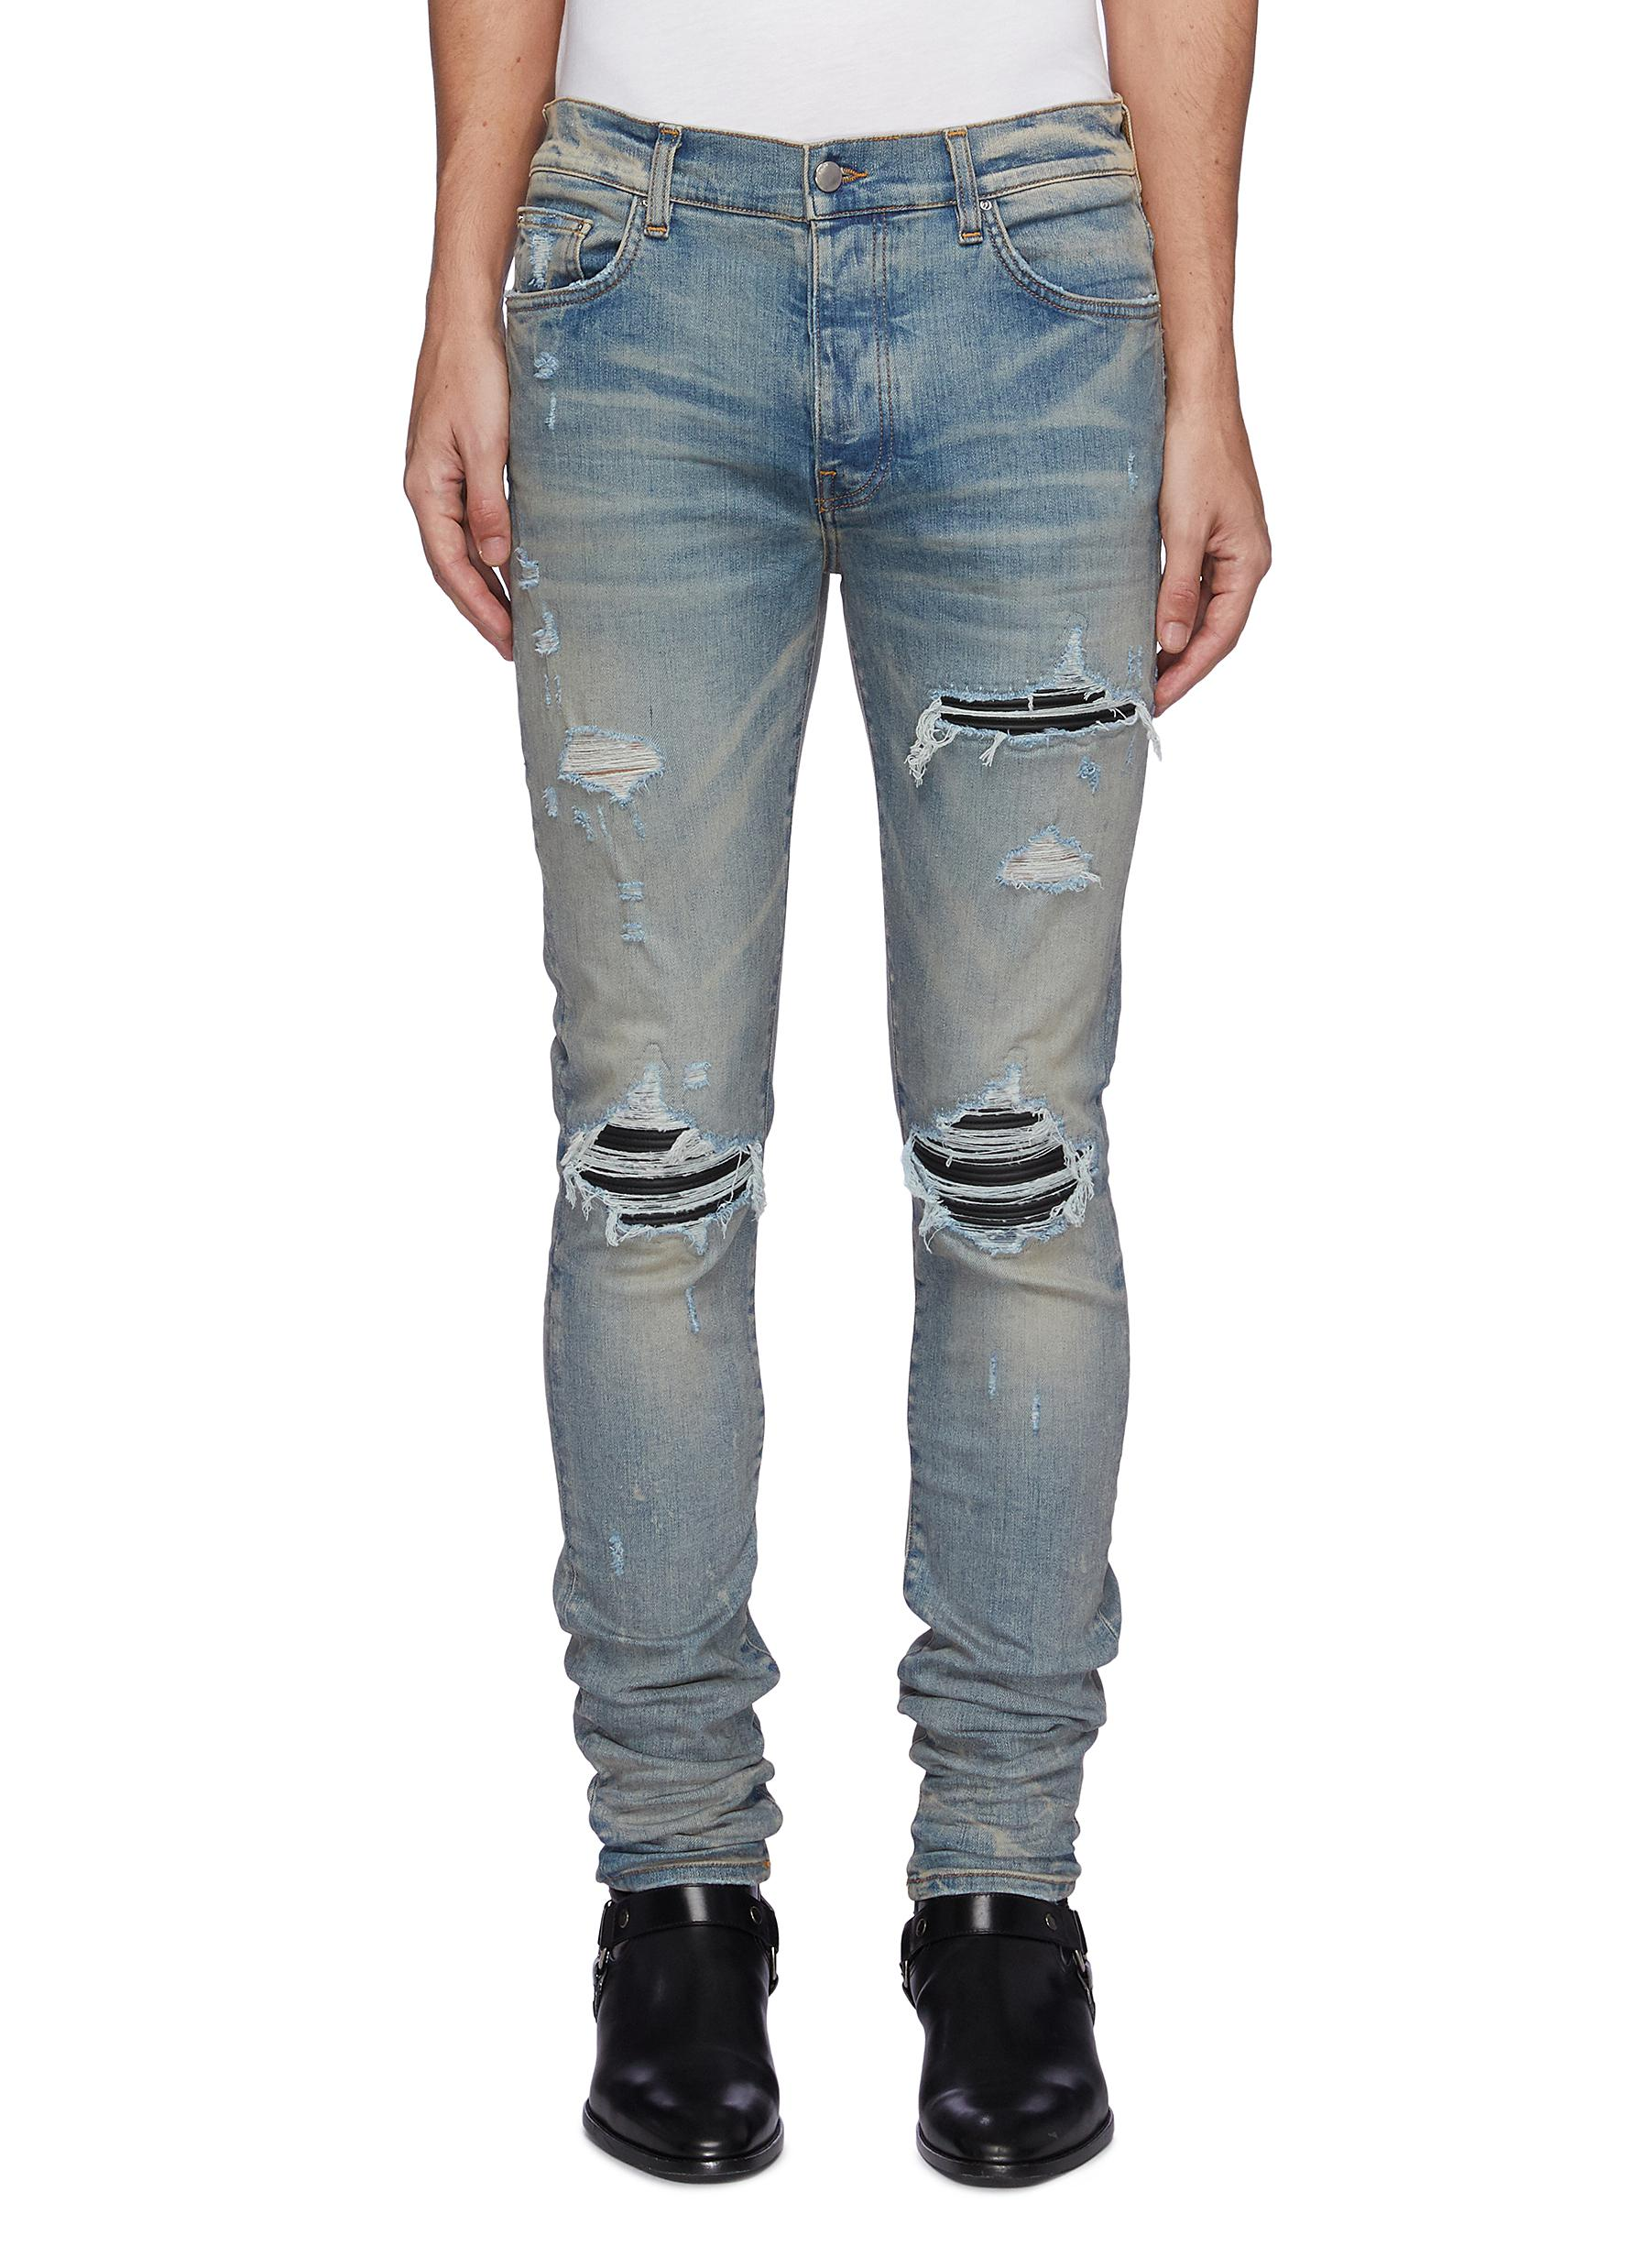 MX1' Ribbed Leather Knee Patch Ripped Washed Skinny Jeans